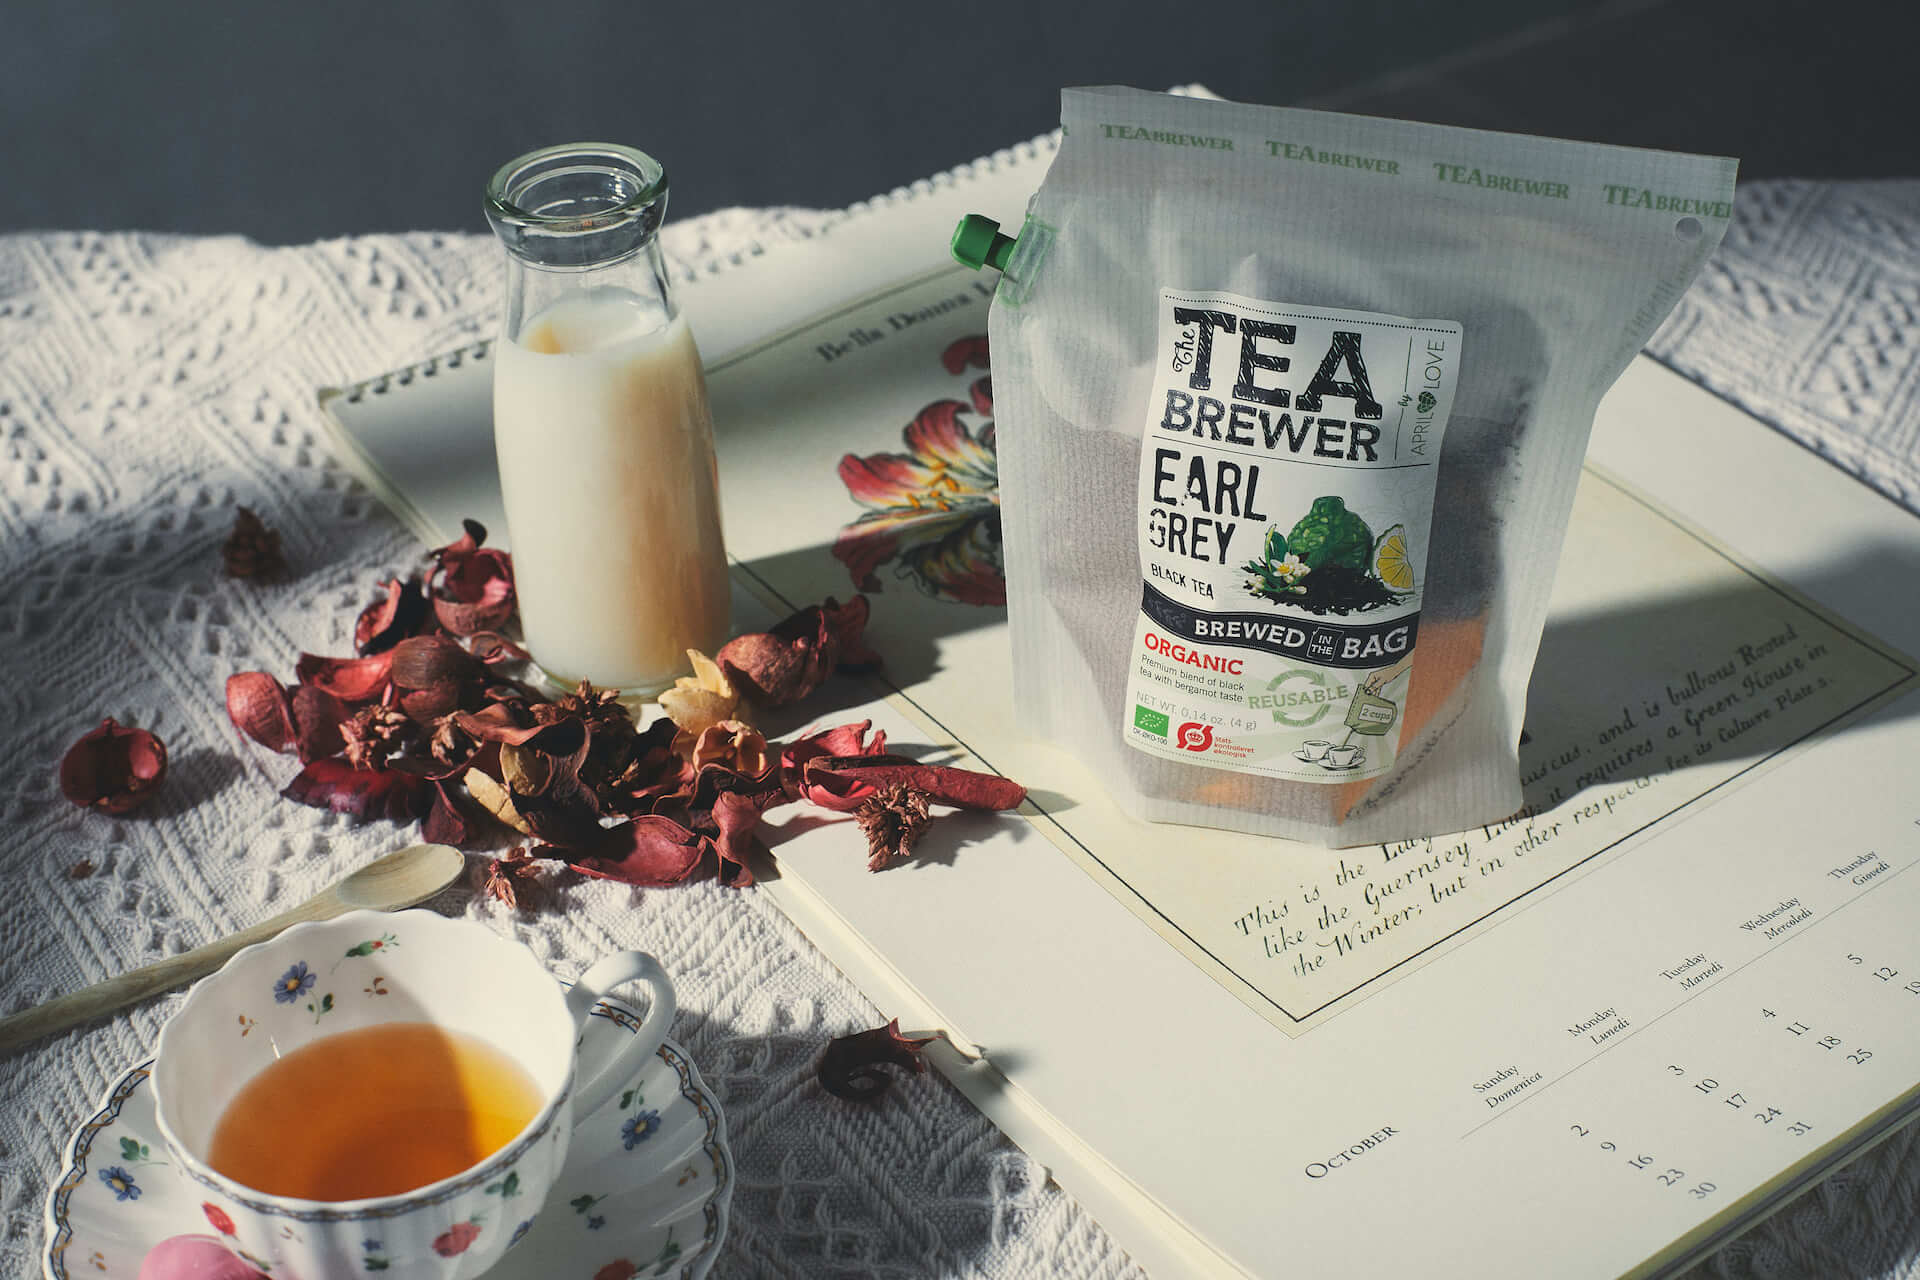 The Teabrewer 花茶冲煮袋